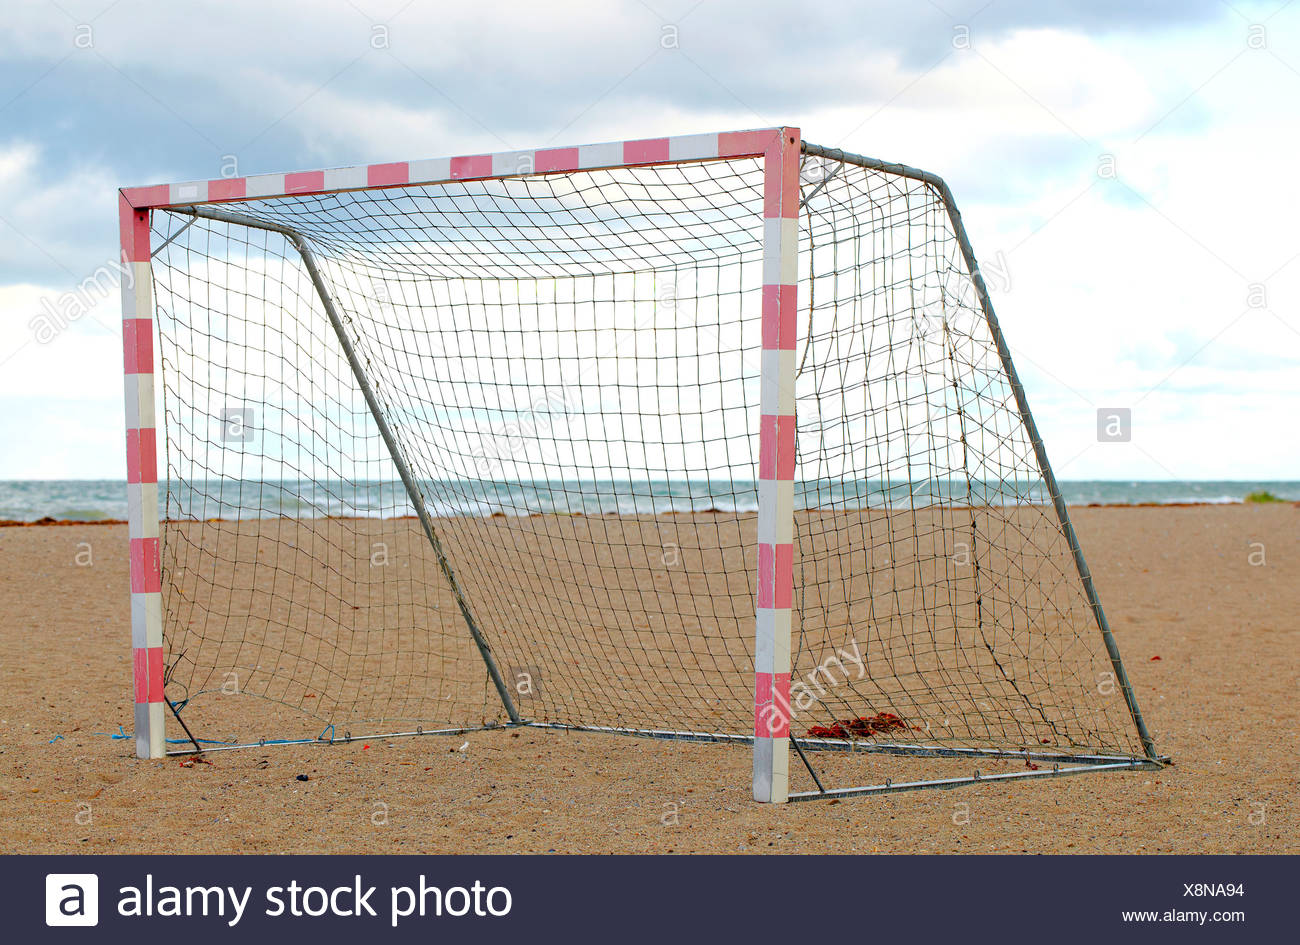 Lone soccer net on the beach against cloudy sky - Stock Image